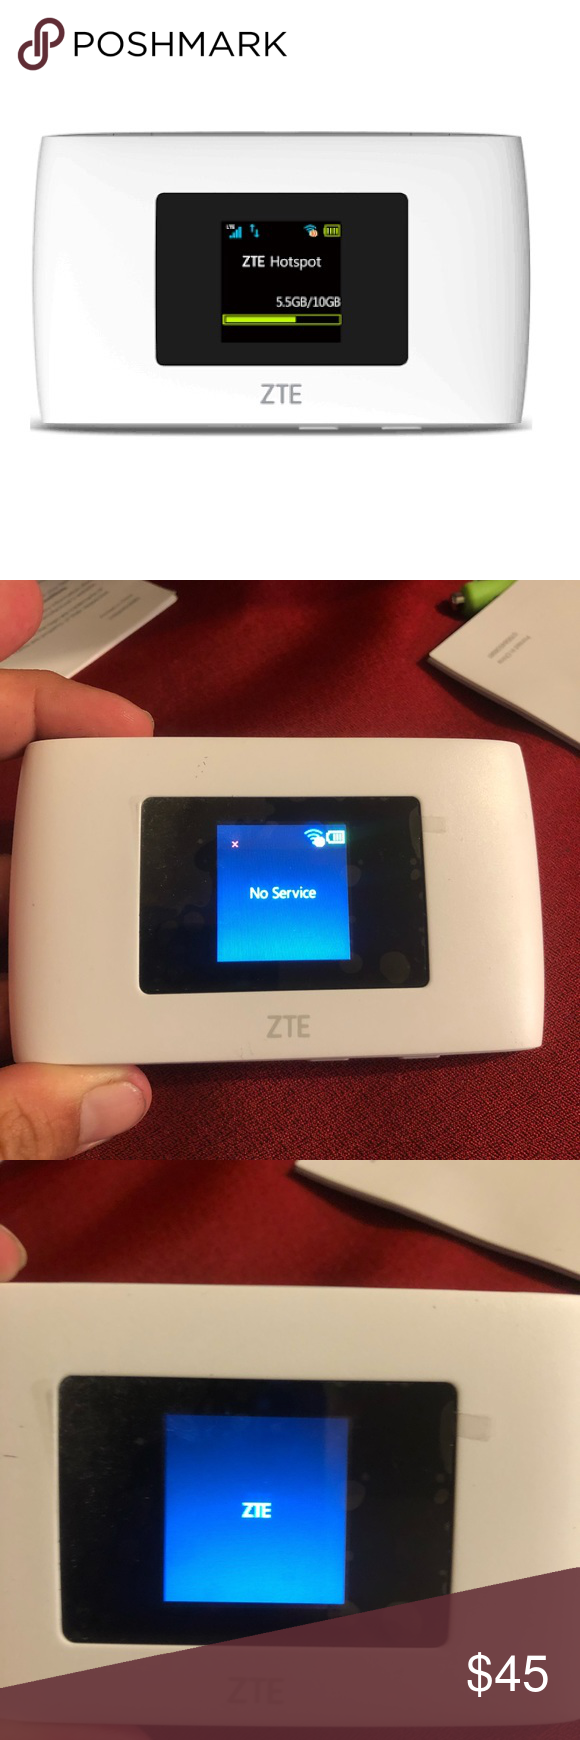 SPRINT ZTE WARP CONNECT HOTSPOT NICE GIFT WIFI This is a